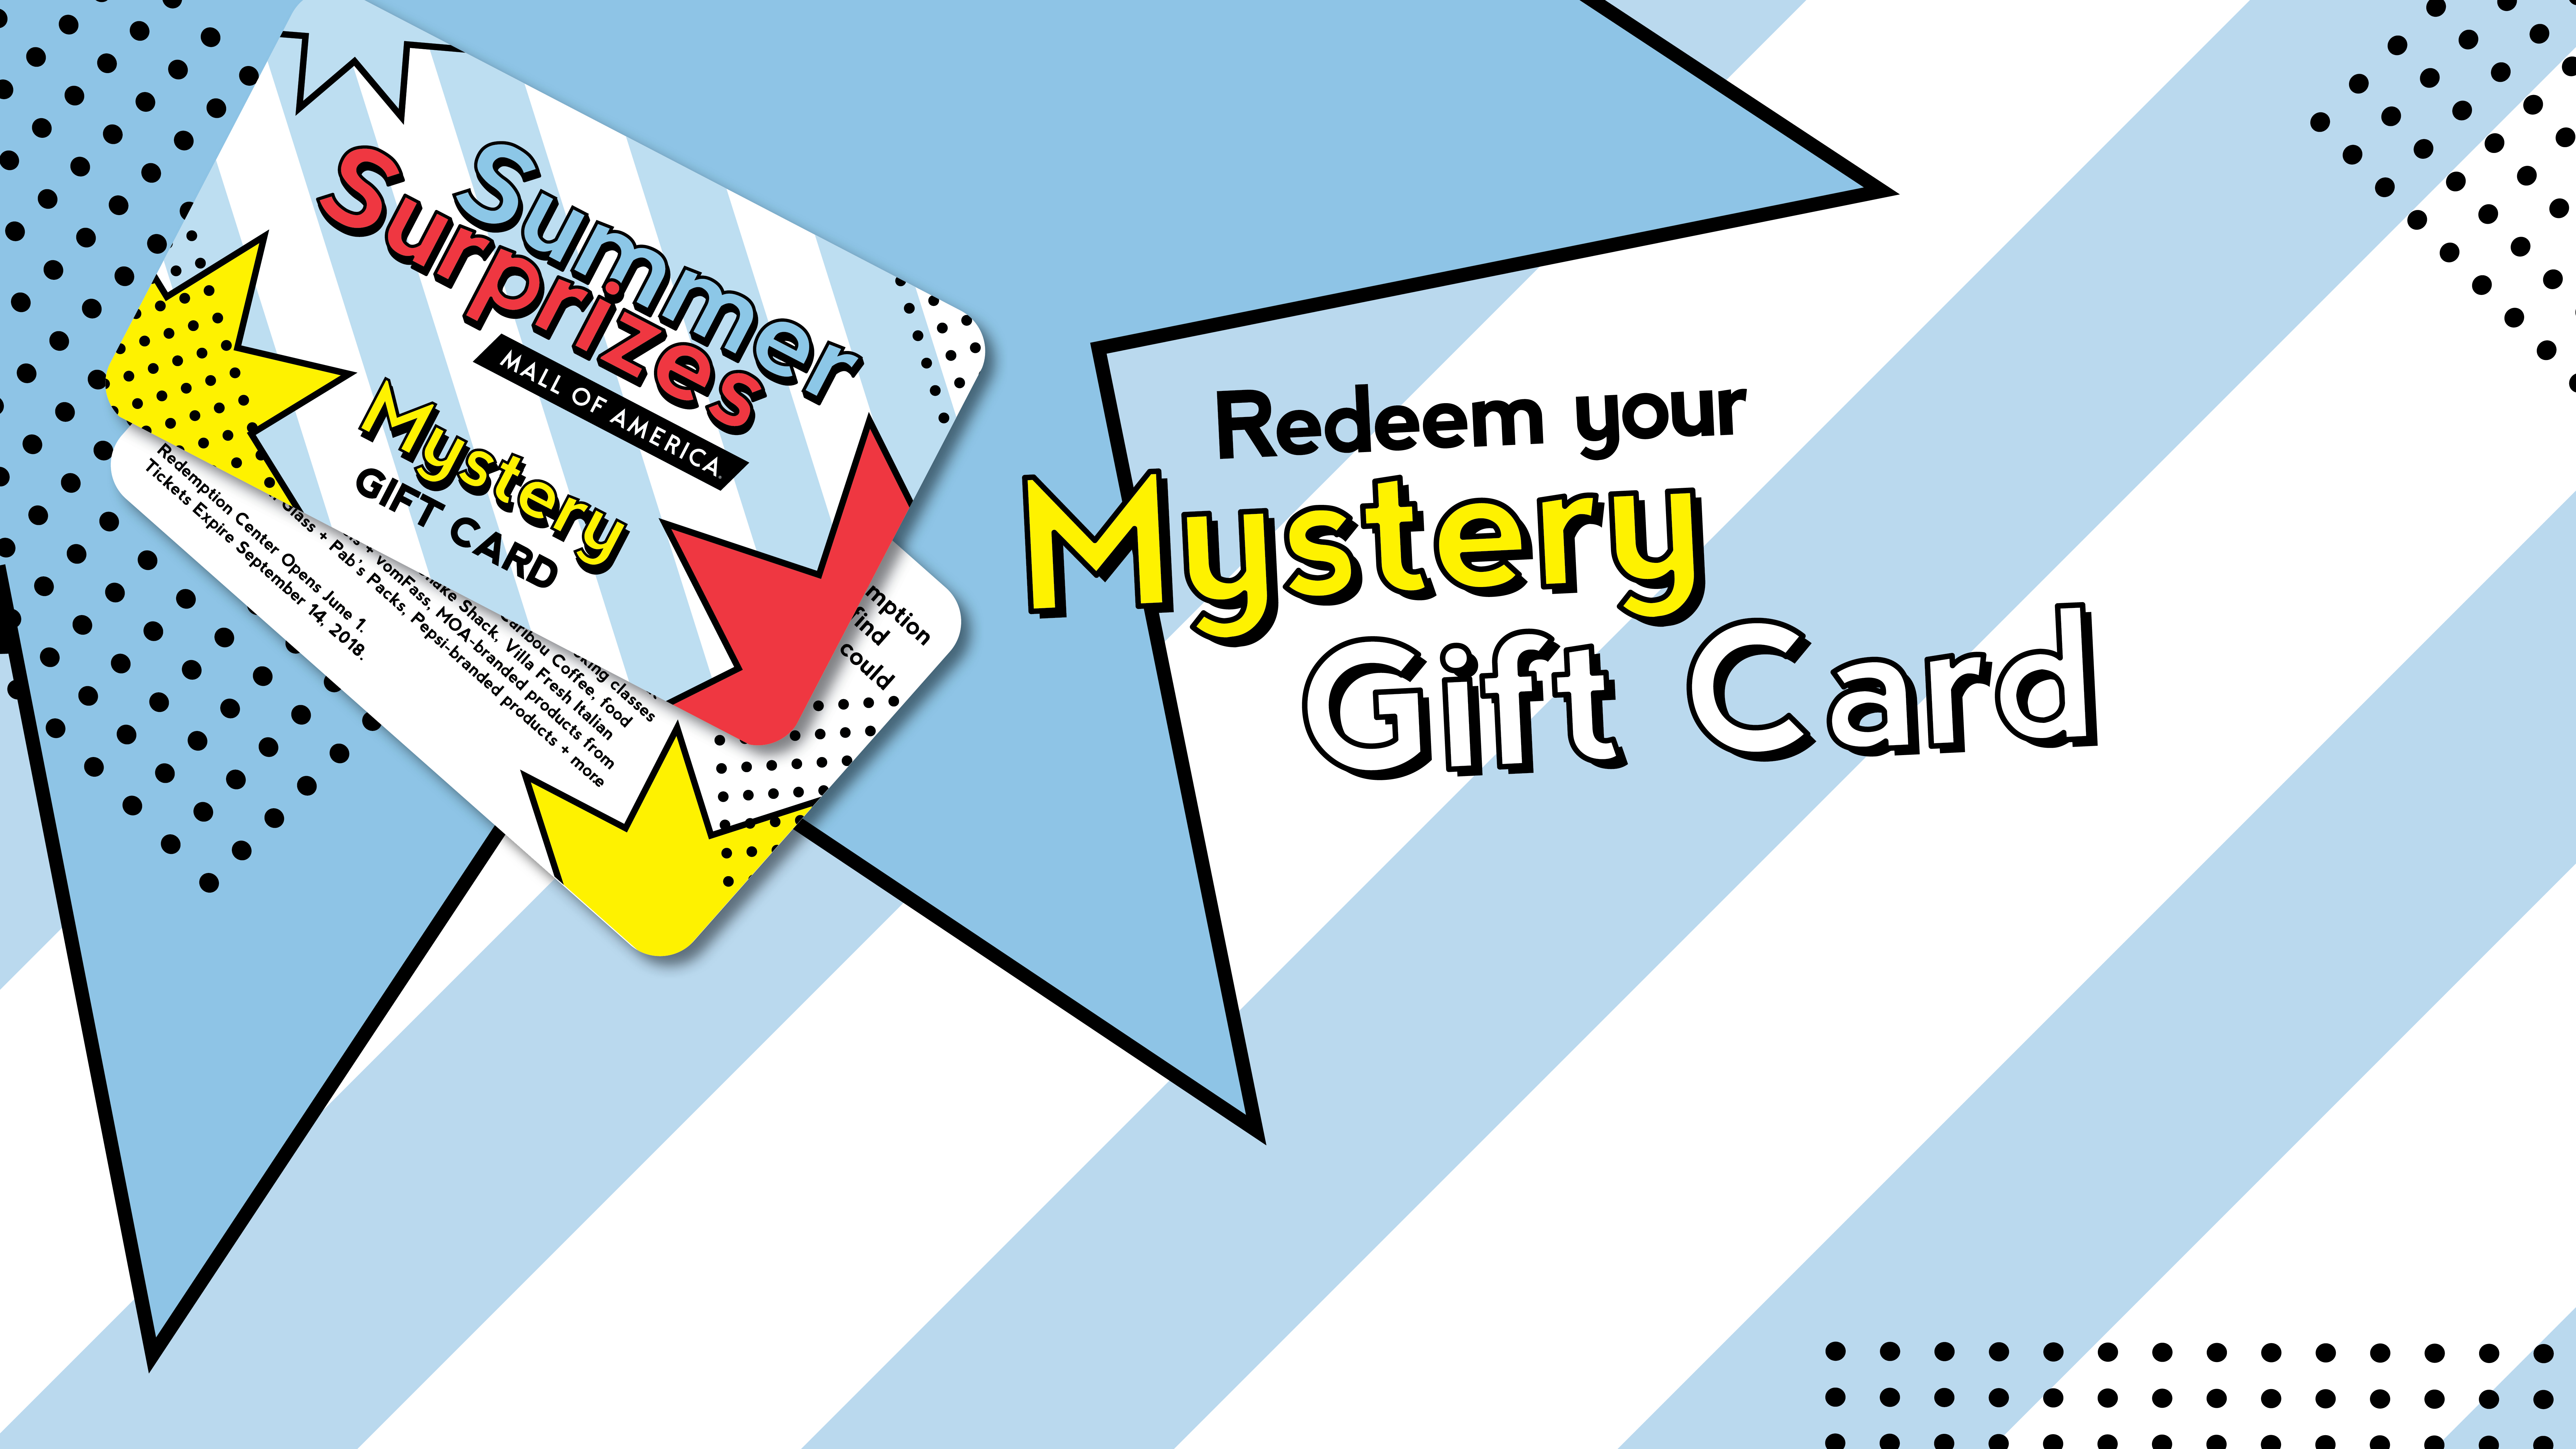 Visit The Mystery Gift Card Redemption Kiosk